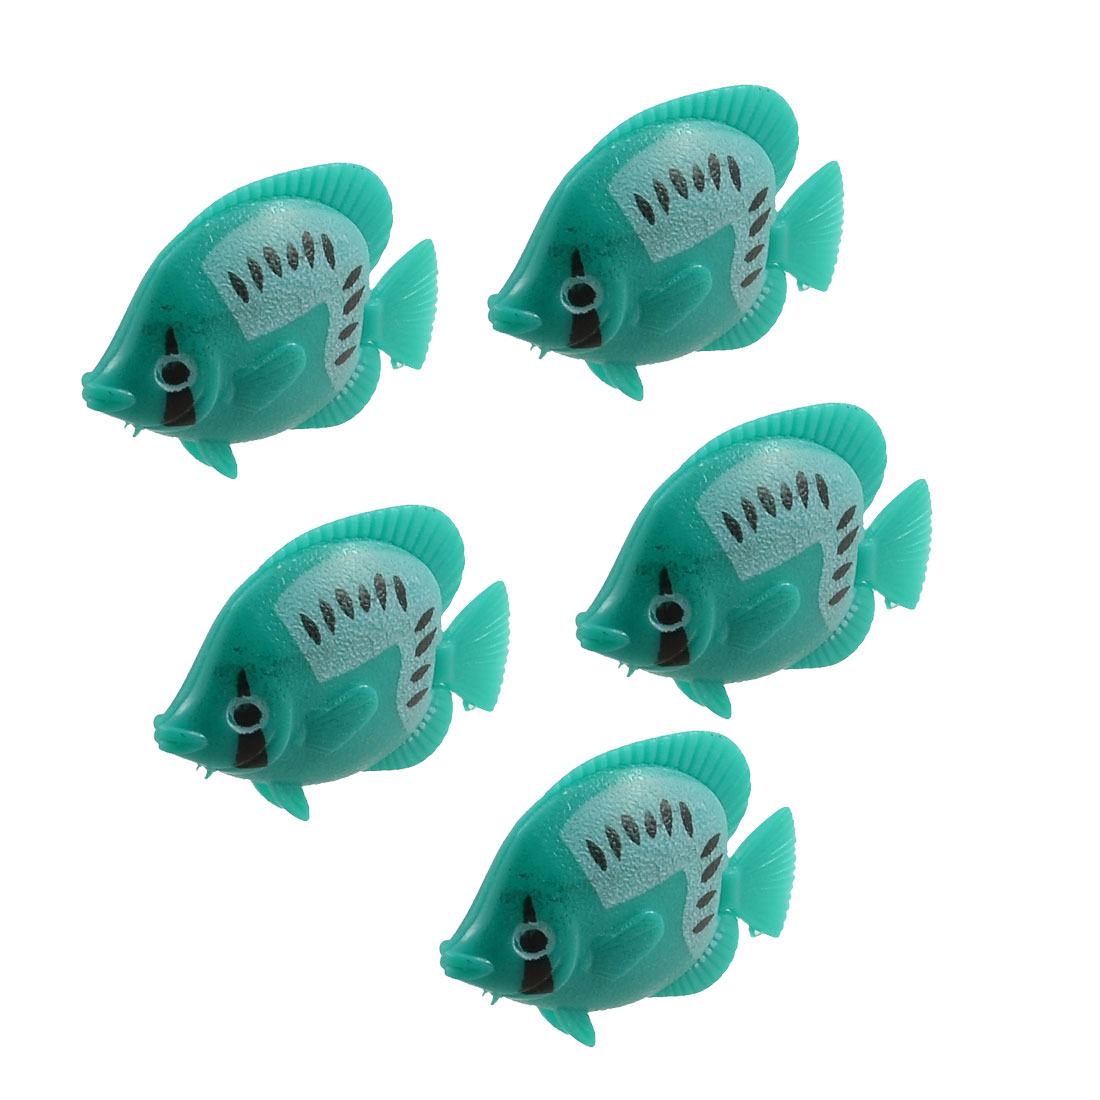 5 Pcs Green Plastic Swing Tail Tropical Fish Aquarium Ornament Decoration